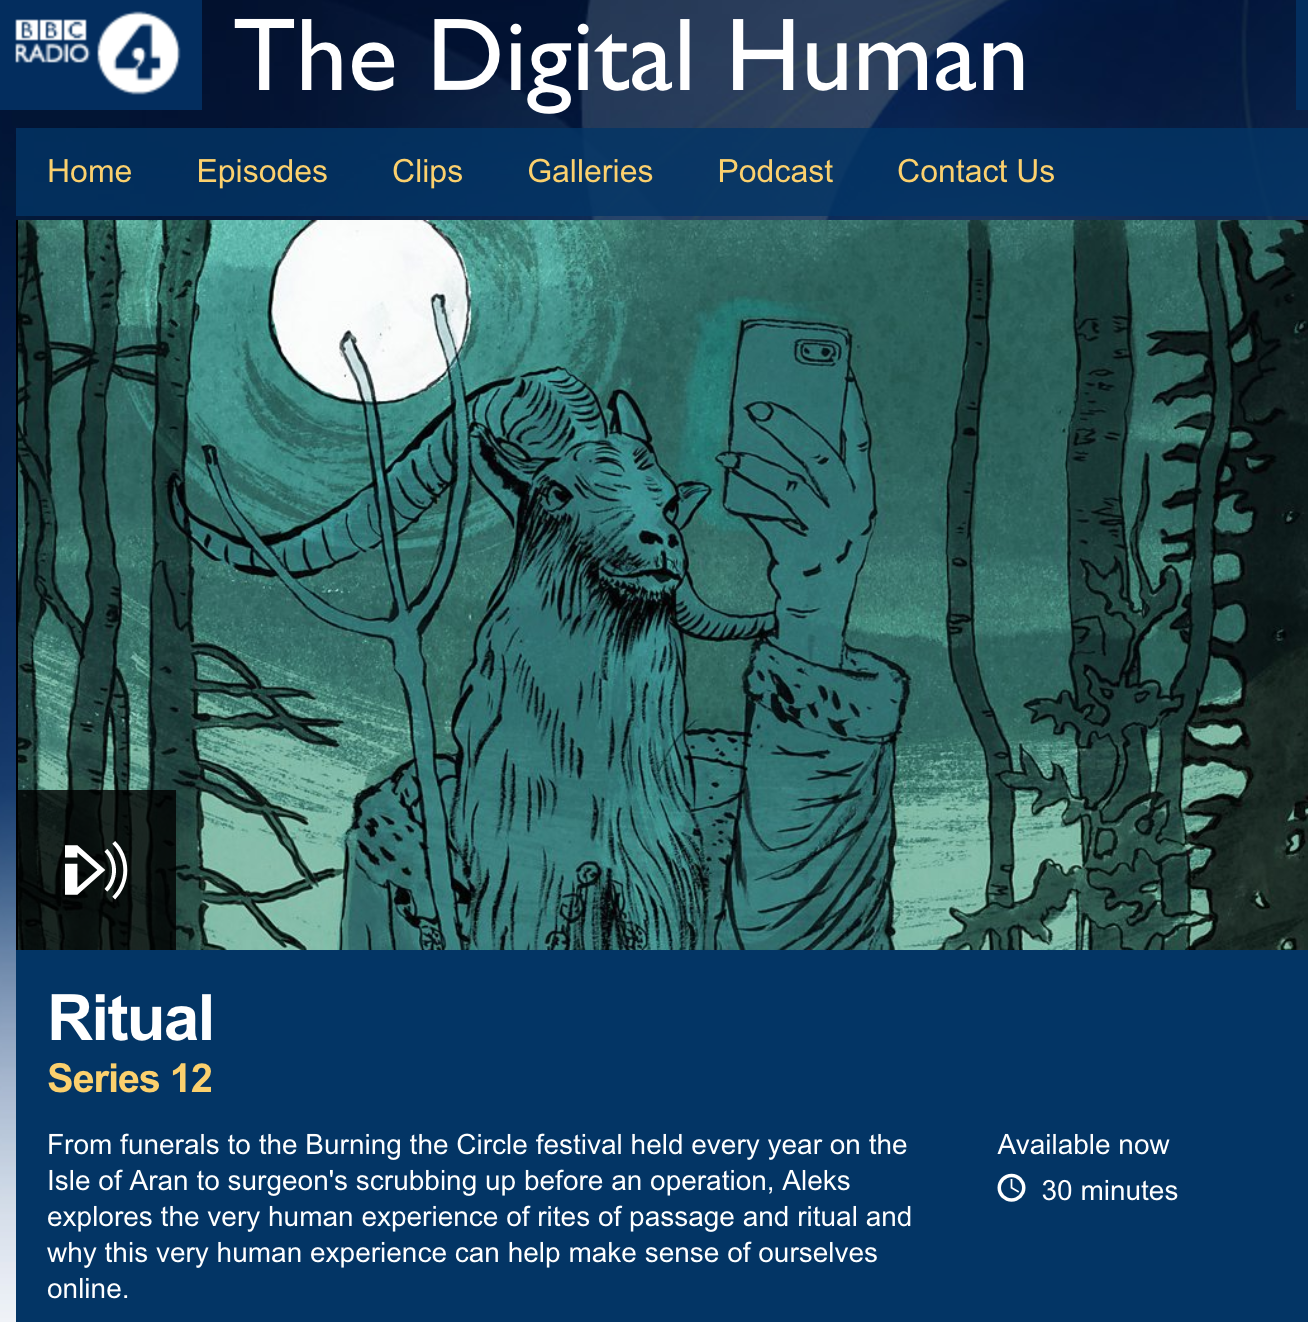 interview on radio 4 - talking about ritual on the digital human